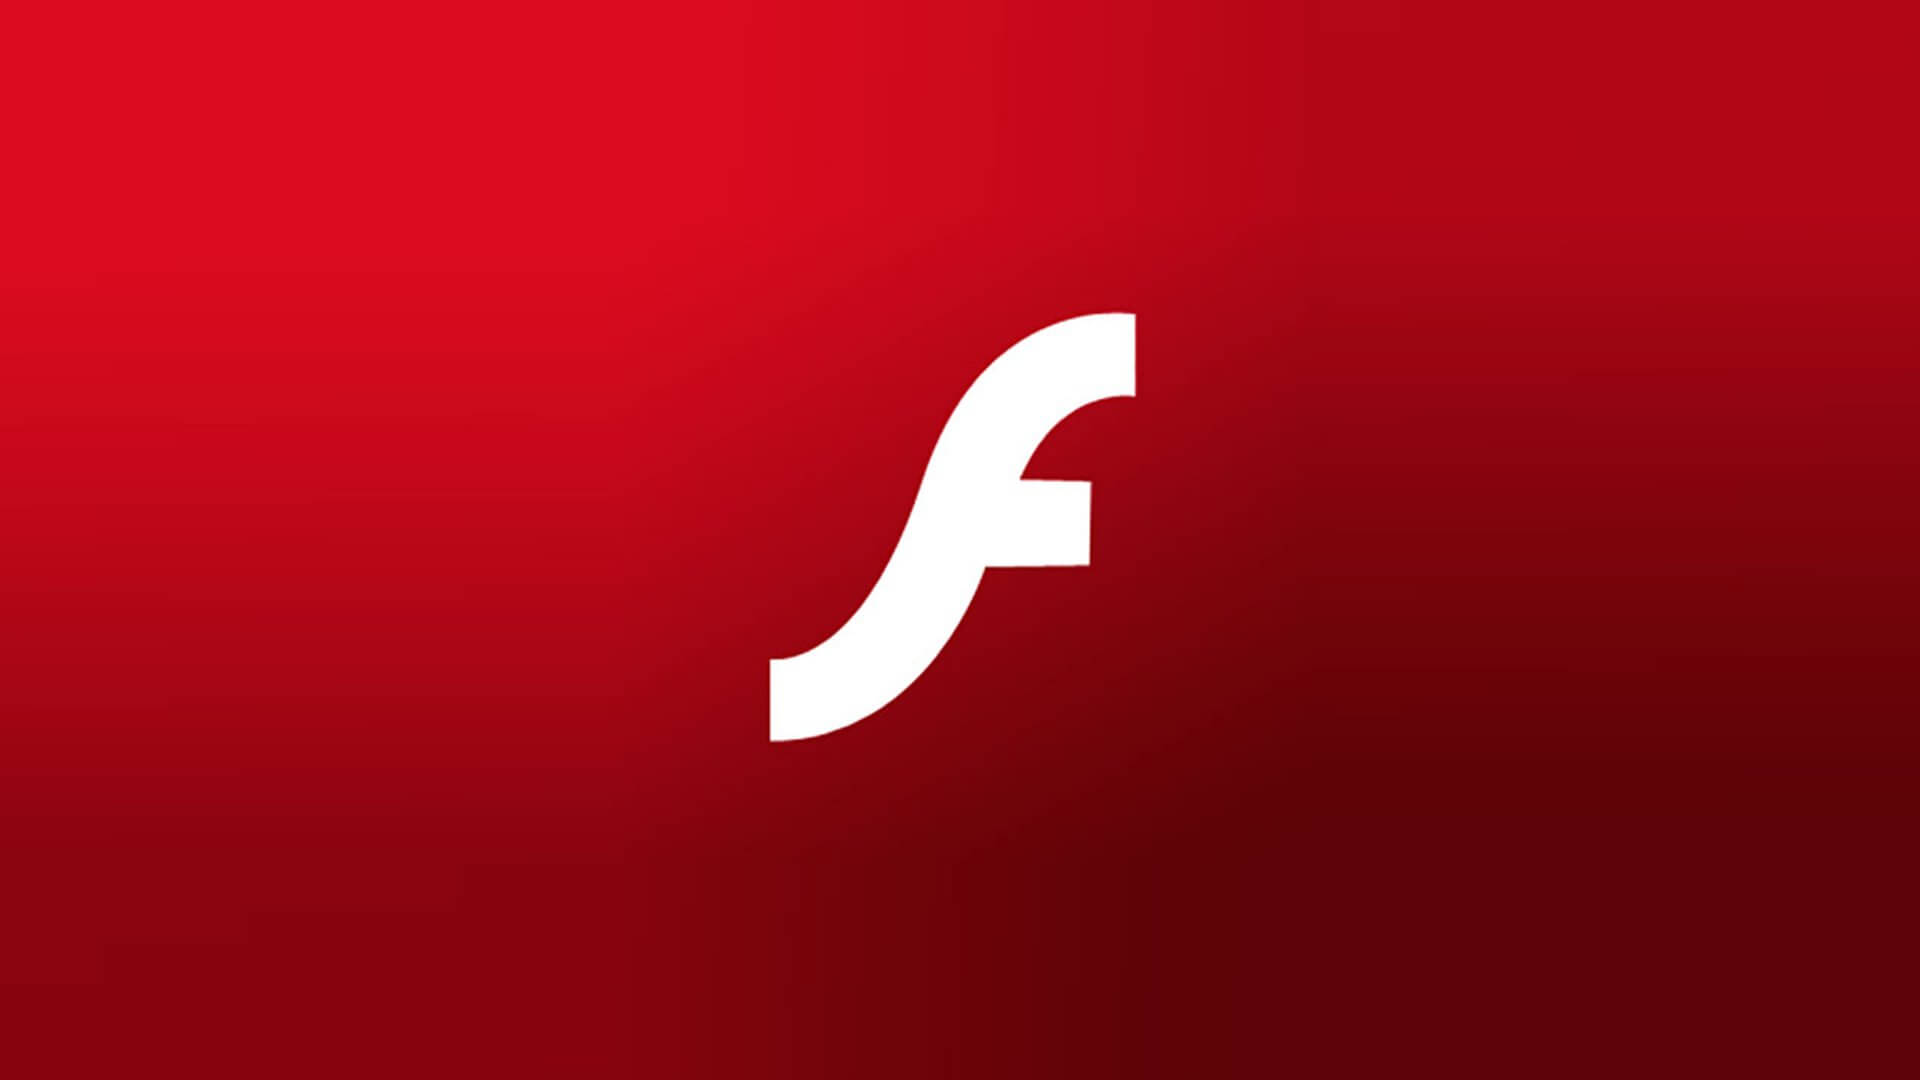 Flash è divenuto obsoleto